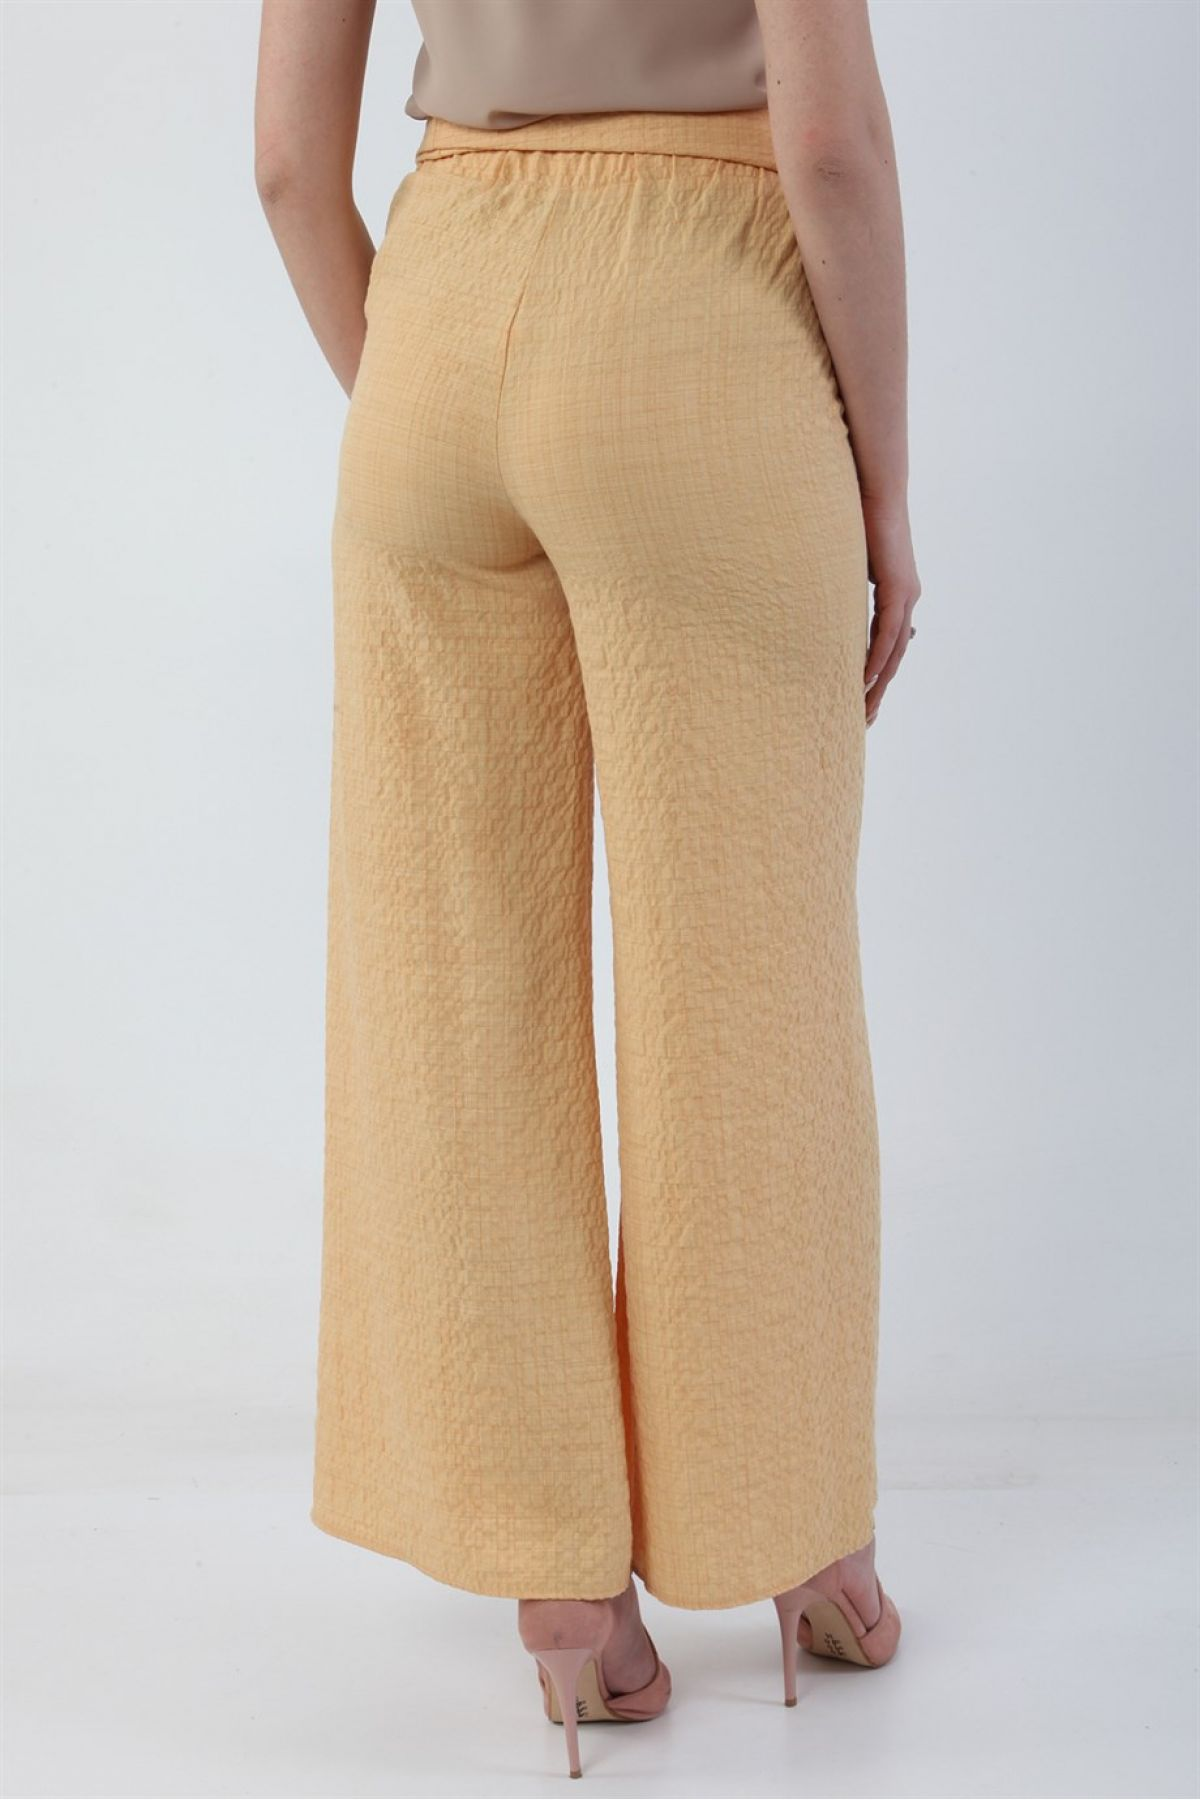 women pants-Yellow